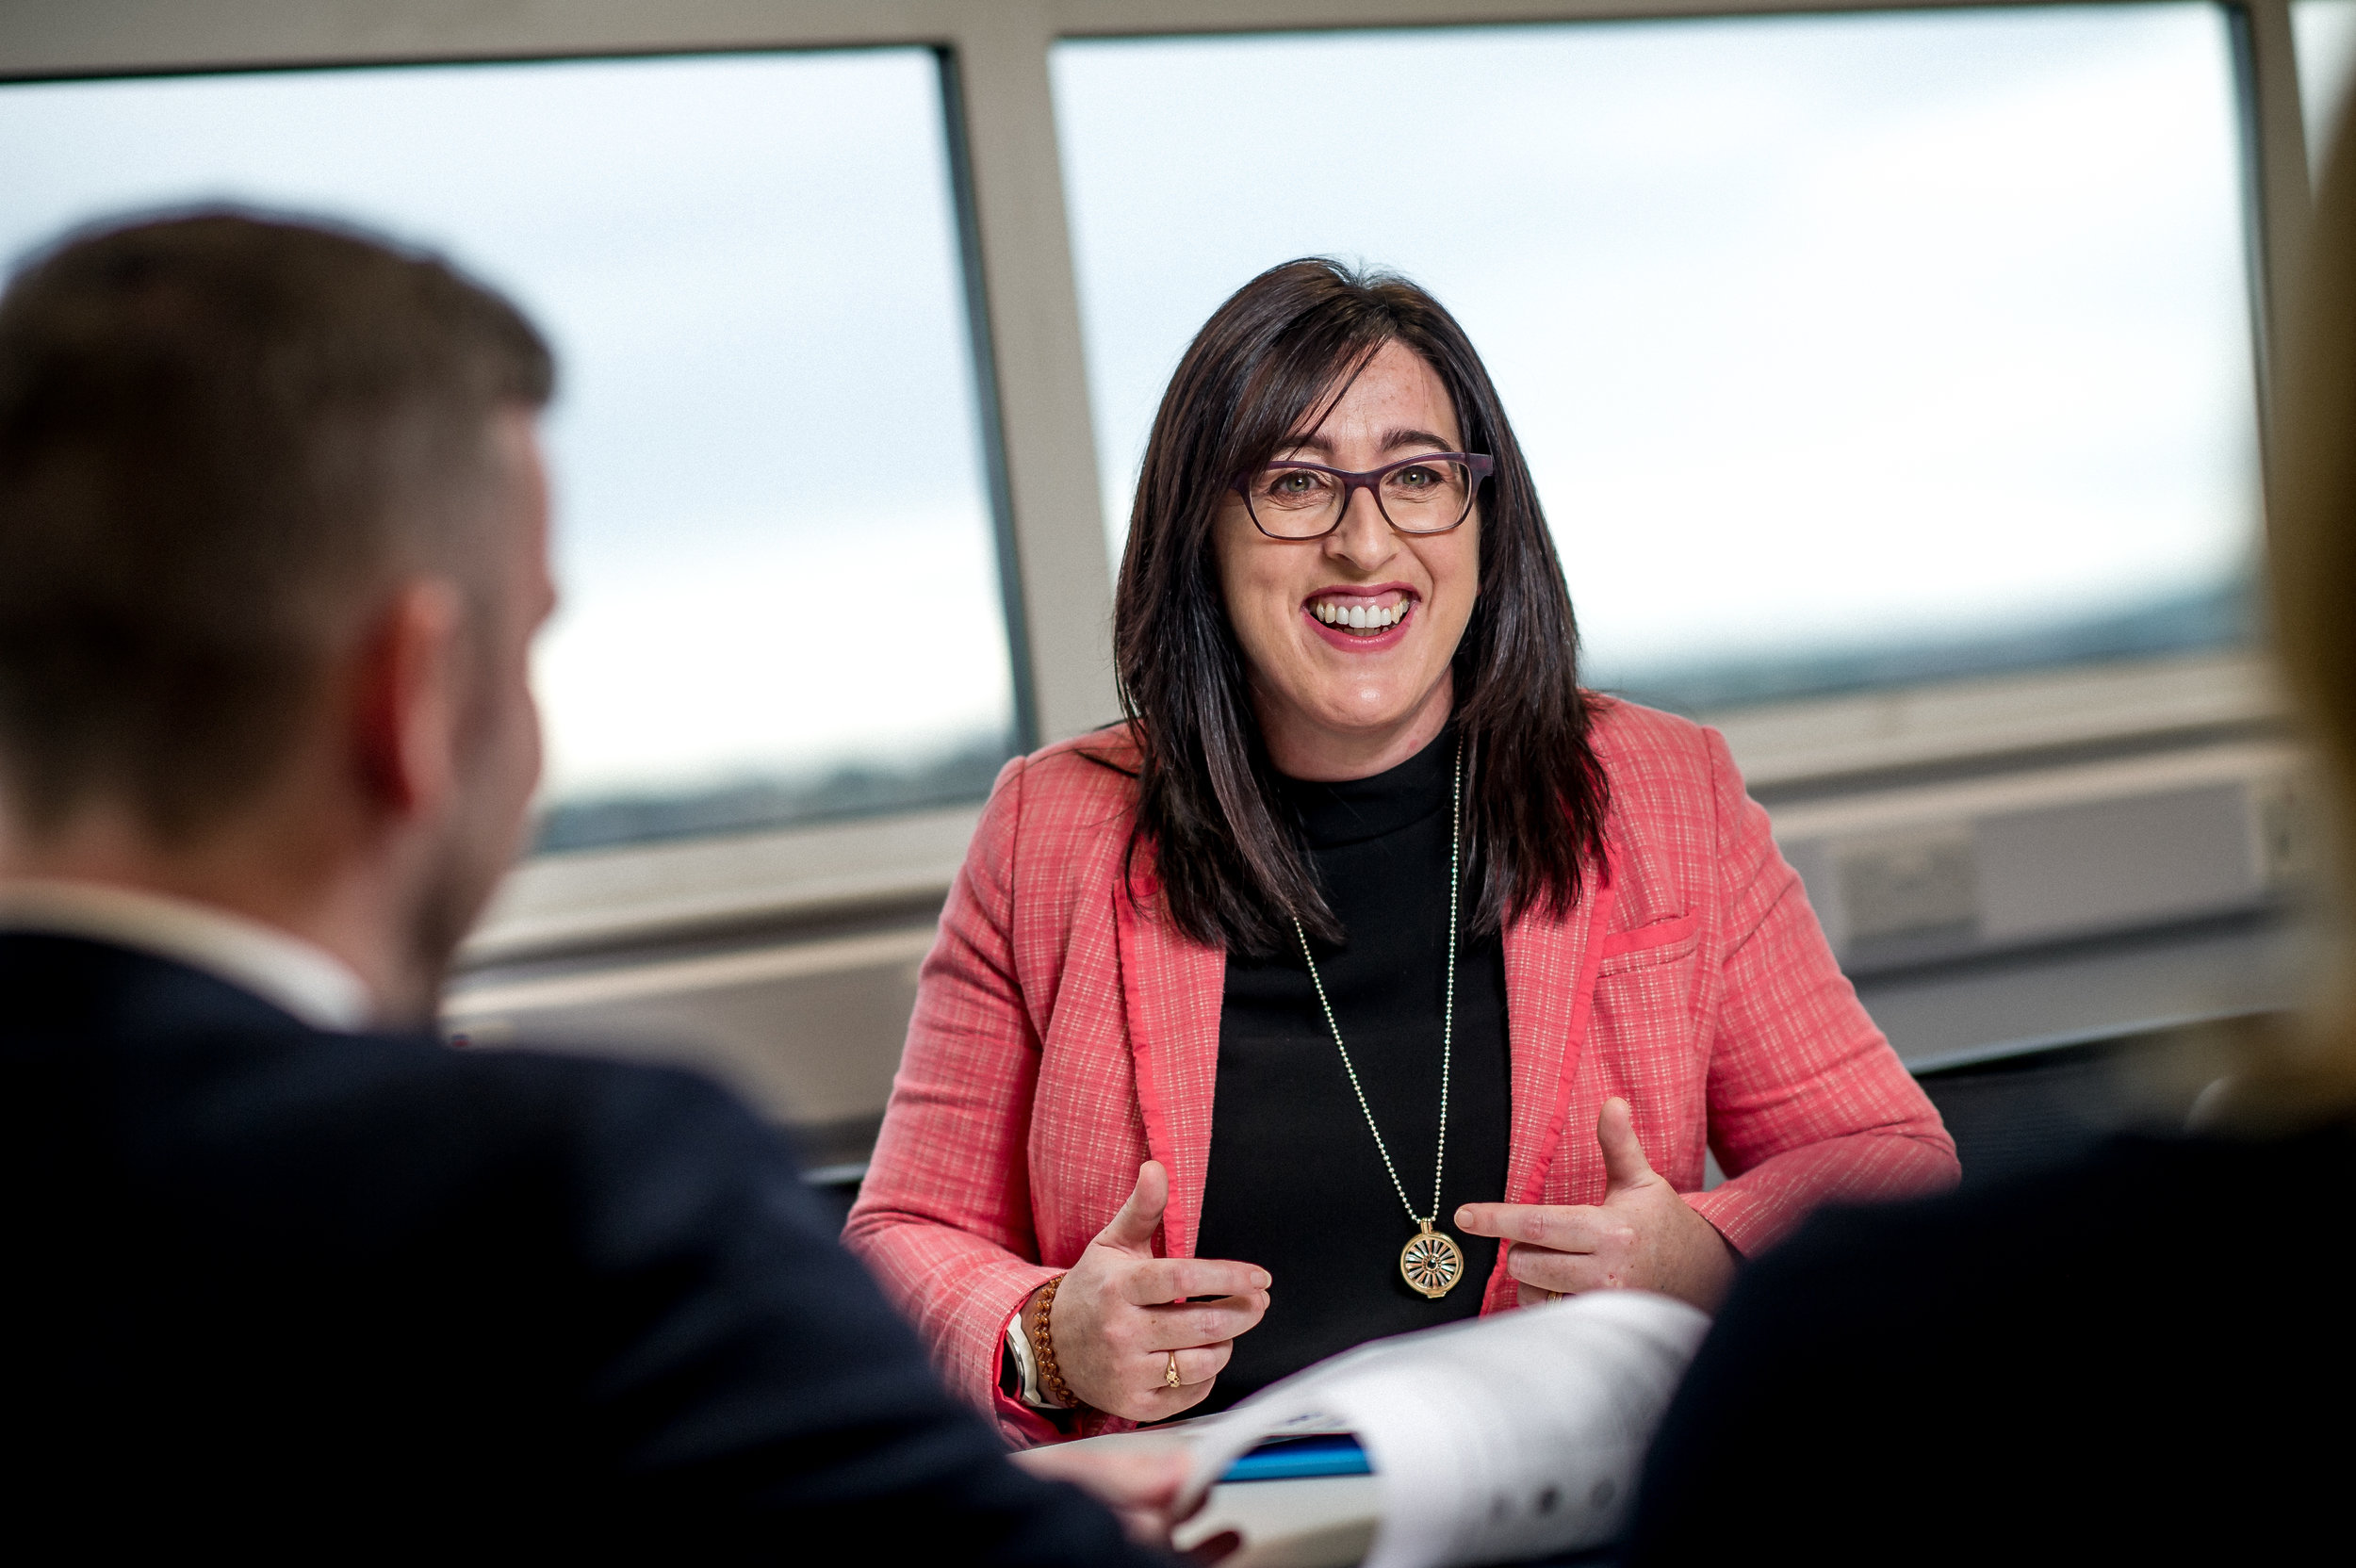 Georgina O'Leary is the director of innovation, research and development at Allstate and FinTech envoy for Northern Ireland